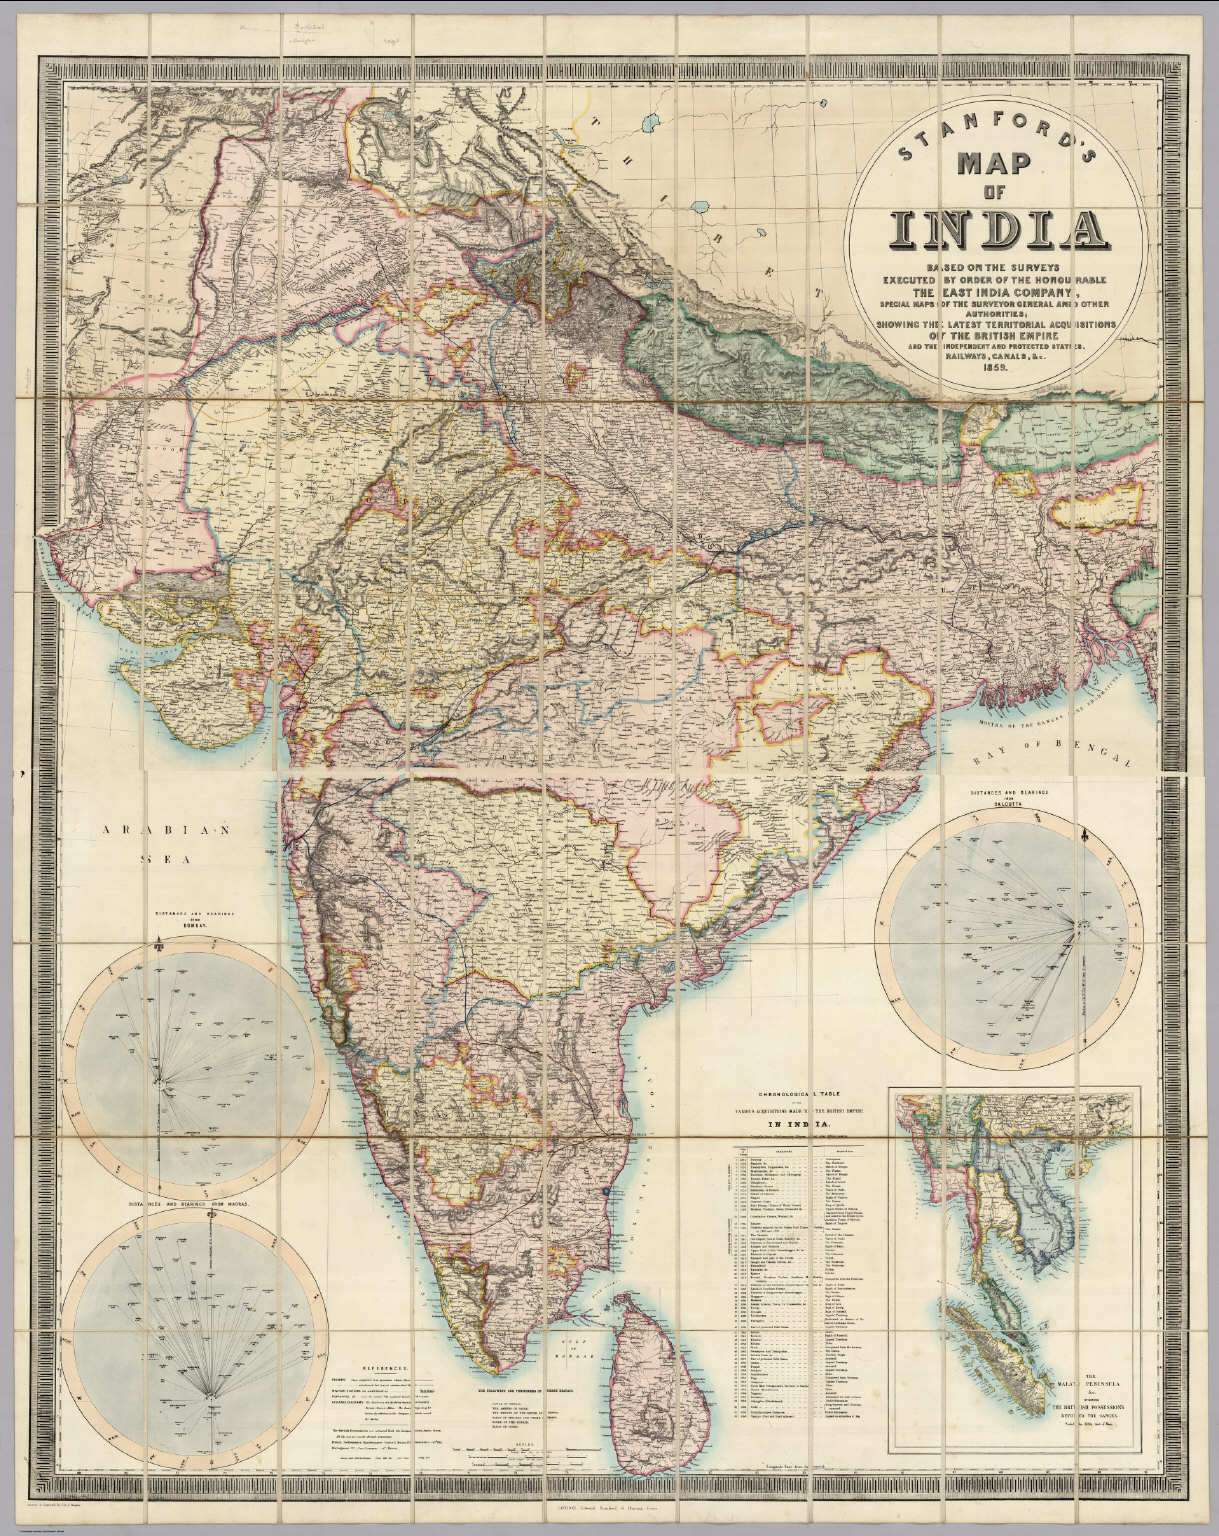 Stanford's Map Of India. - David Rumsey Historical Map ... on strasbourg map, gstaad map, basel map, hanover map, swiss alps map, zermatt map, dissolution soviet union map, lugano map, wald map, stockholm sweden map, verbier map,